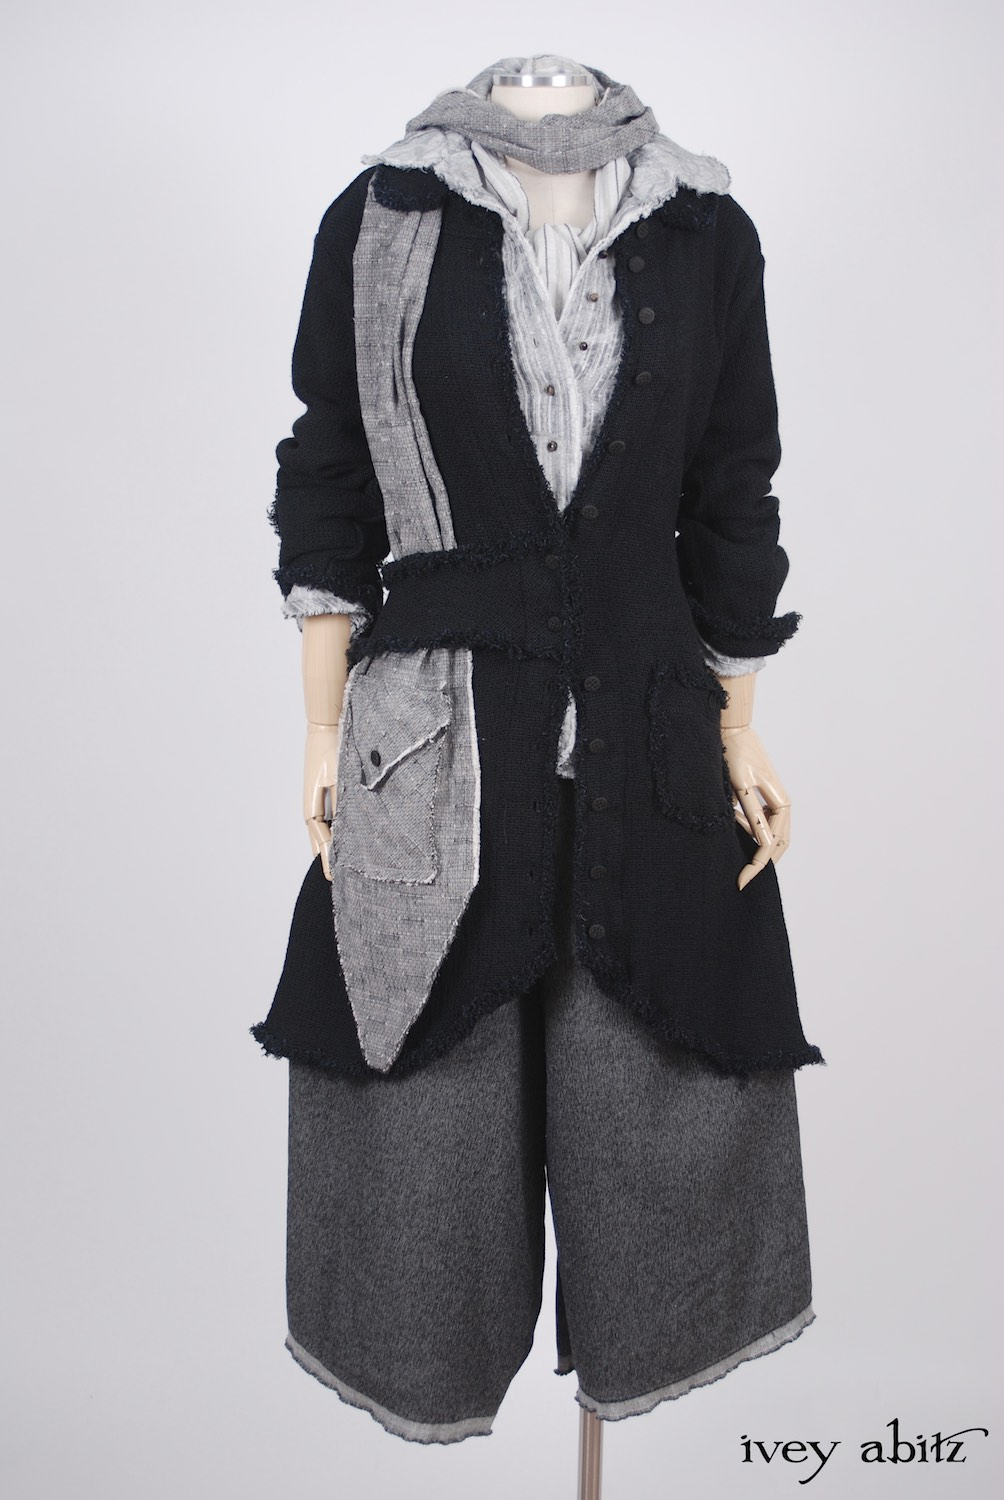 Ivey Abitz - Sollie Jacket in Blackbird Rustic Silk Linen - Sollie Shirt in Sparrow Grey Jacquard  - Baedeker Scarf in Sparrow Grey Rustic Cotton with Raw Edges  - Traipse Trousers in Blackbird Double Layered Weave